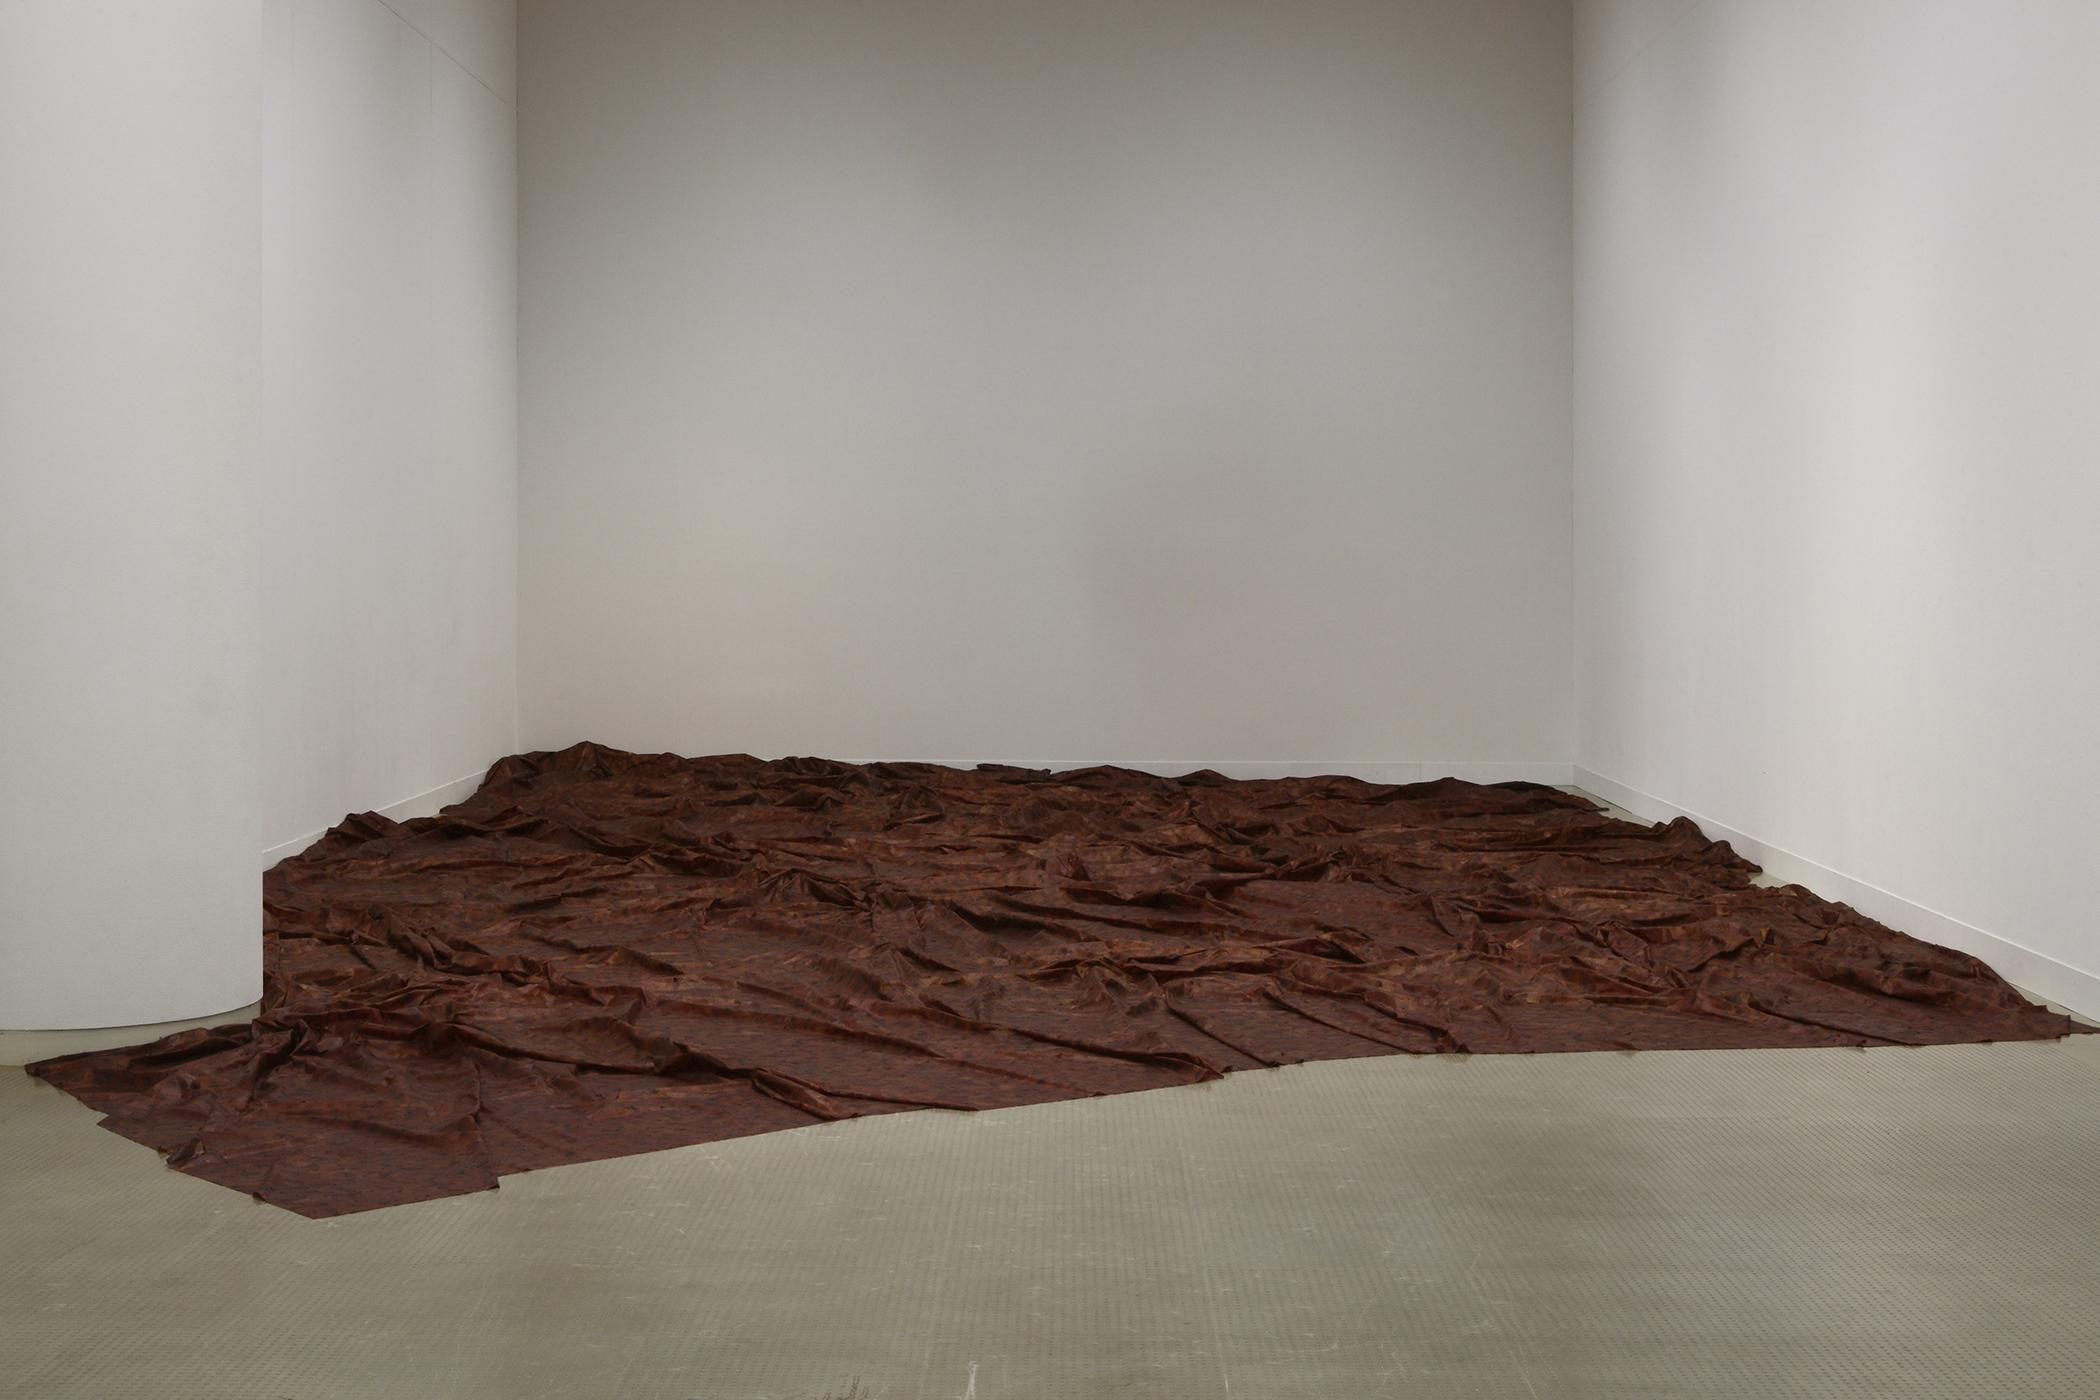 The floor of a room is covered by a brown-red fabric with many folds in it.